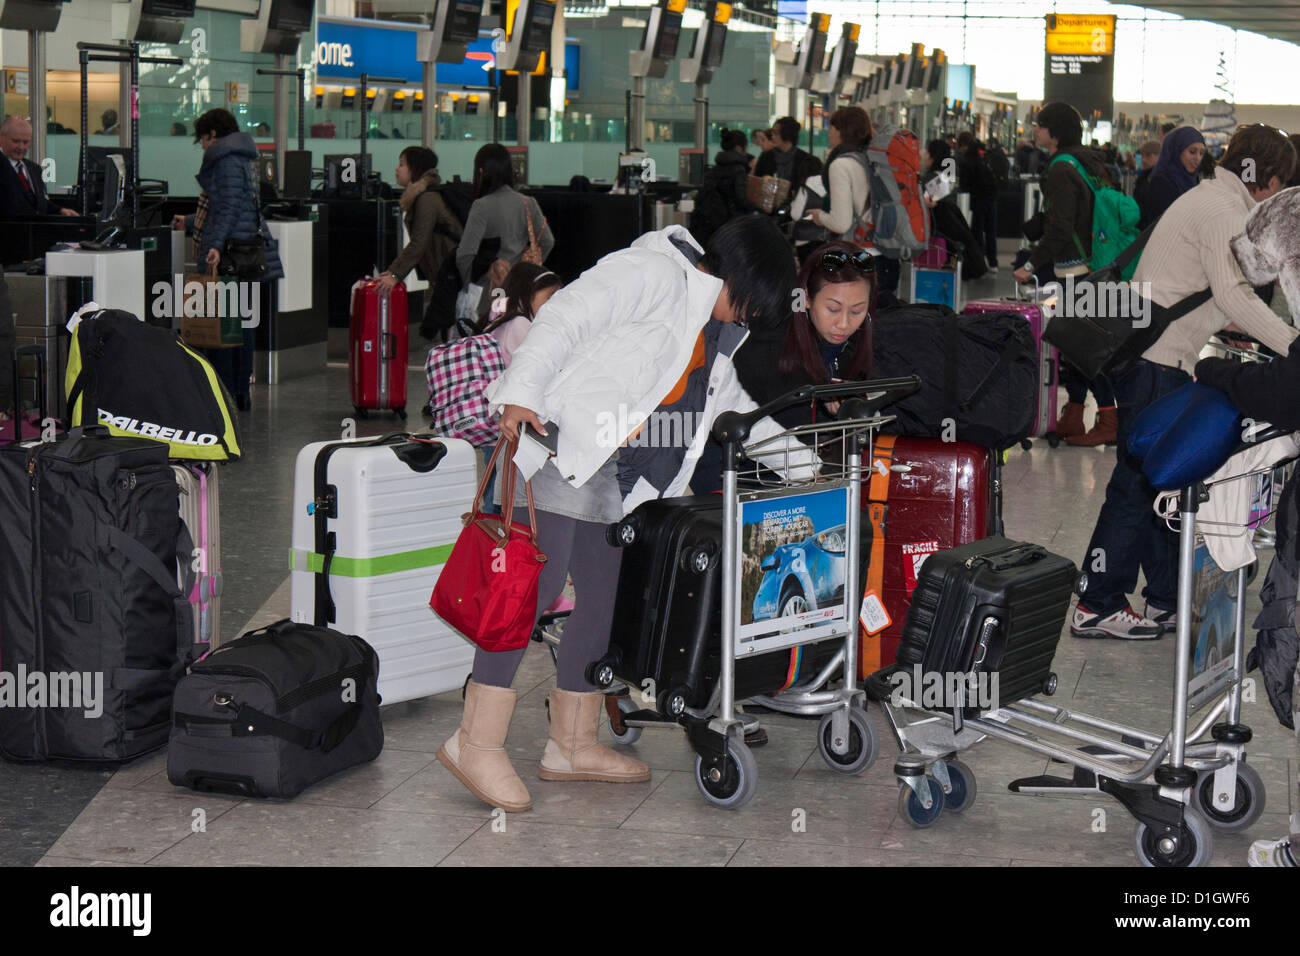 December 21 2012.  T5 Heathrow Airport, London. Passengers wait in line in the departure area on what was expected - Stock Image